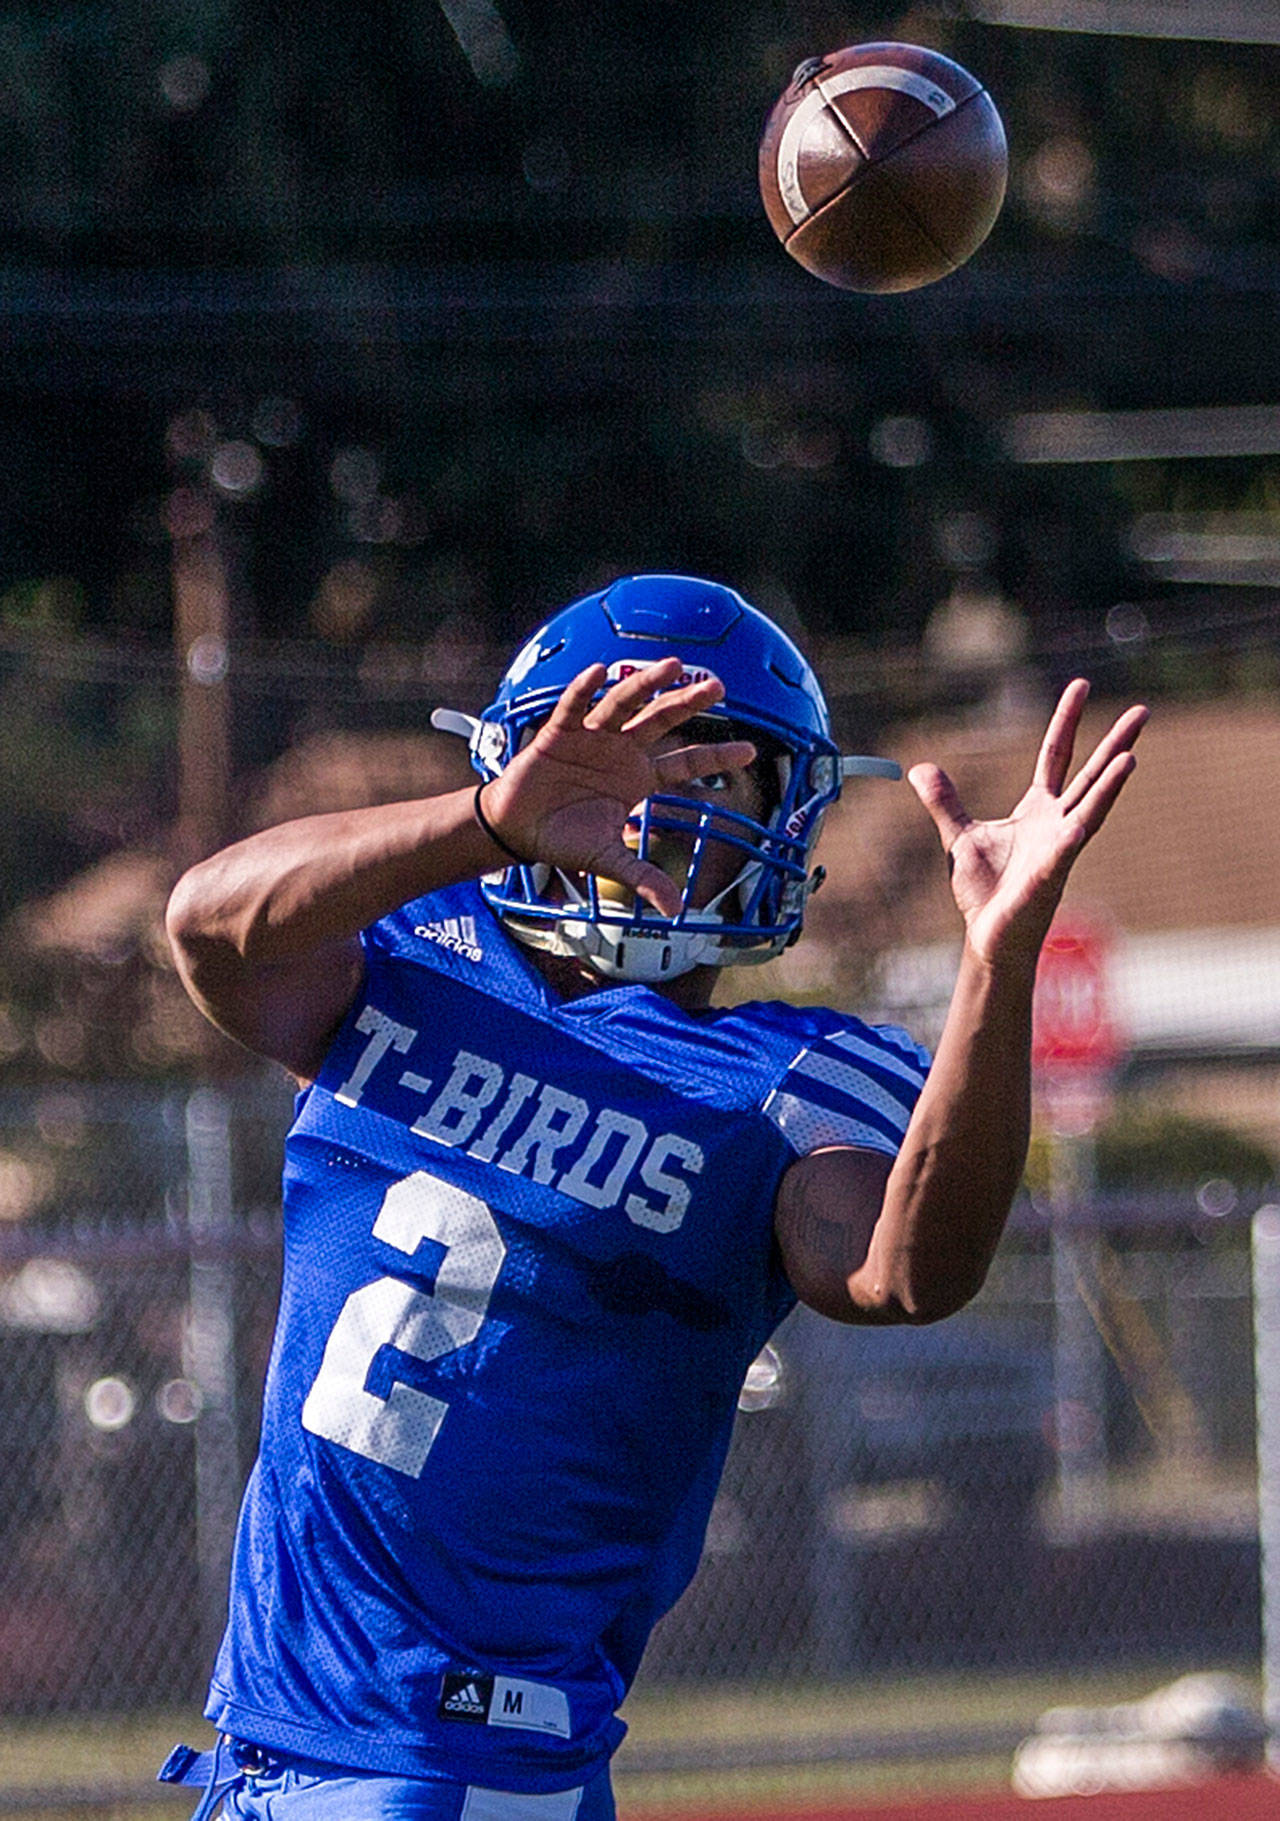 Shorewood receiver Jaro Rouse catches a pass during practice Wednesday afternoon at Shorewood High School in Shoreline. (Olivia Vanni / The Herald)